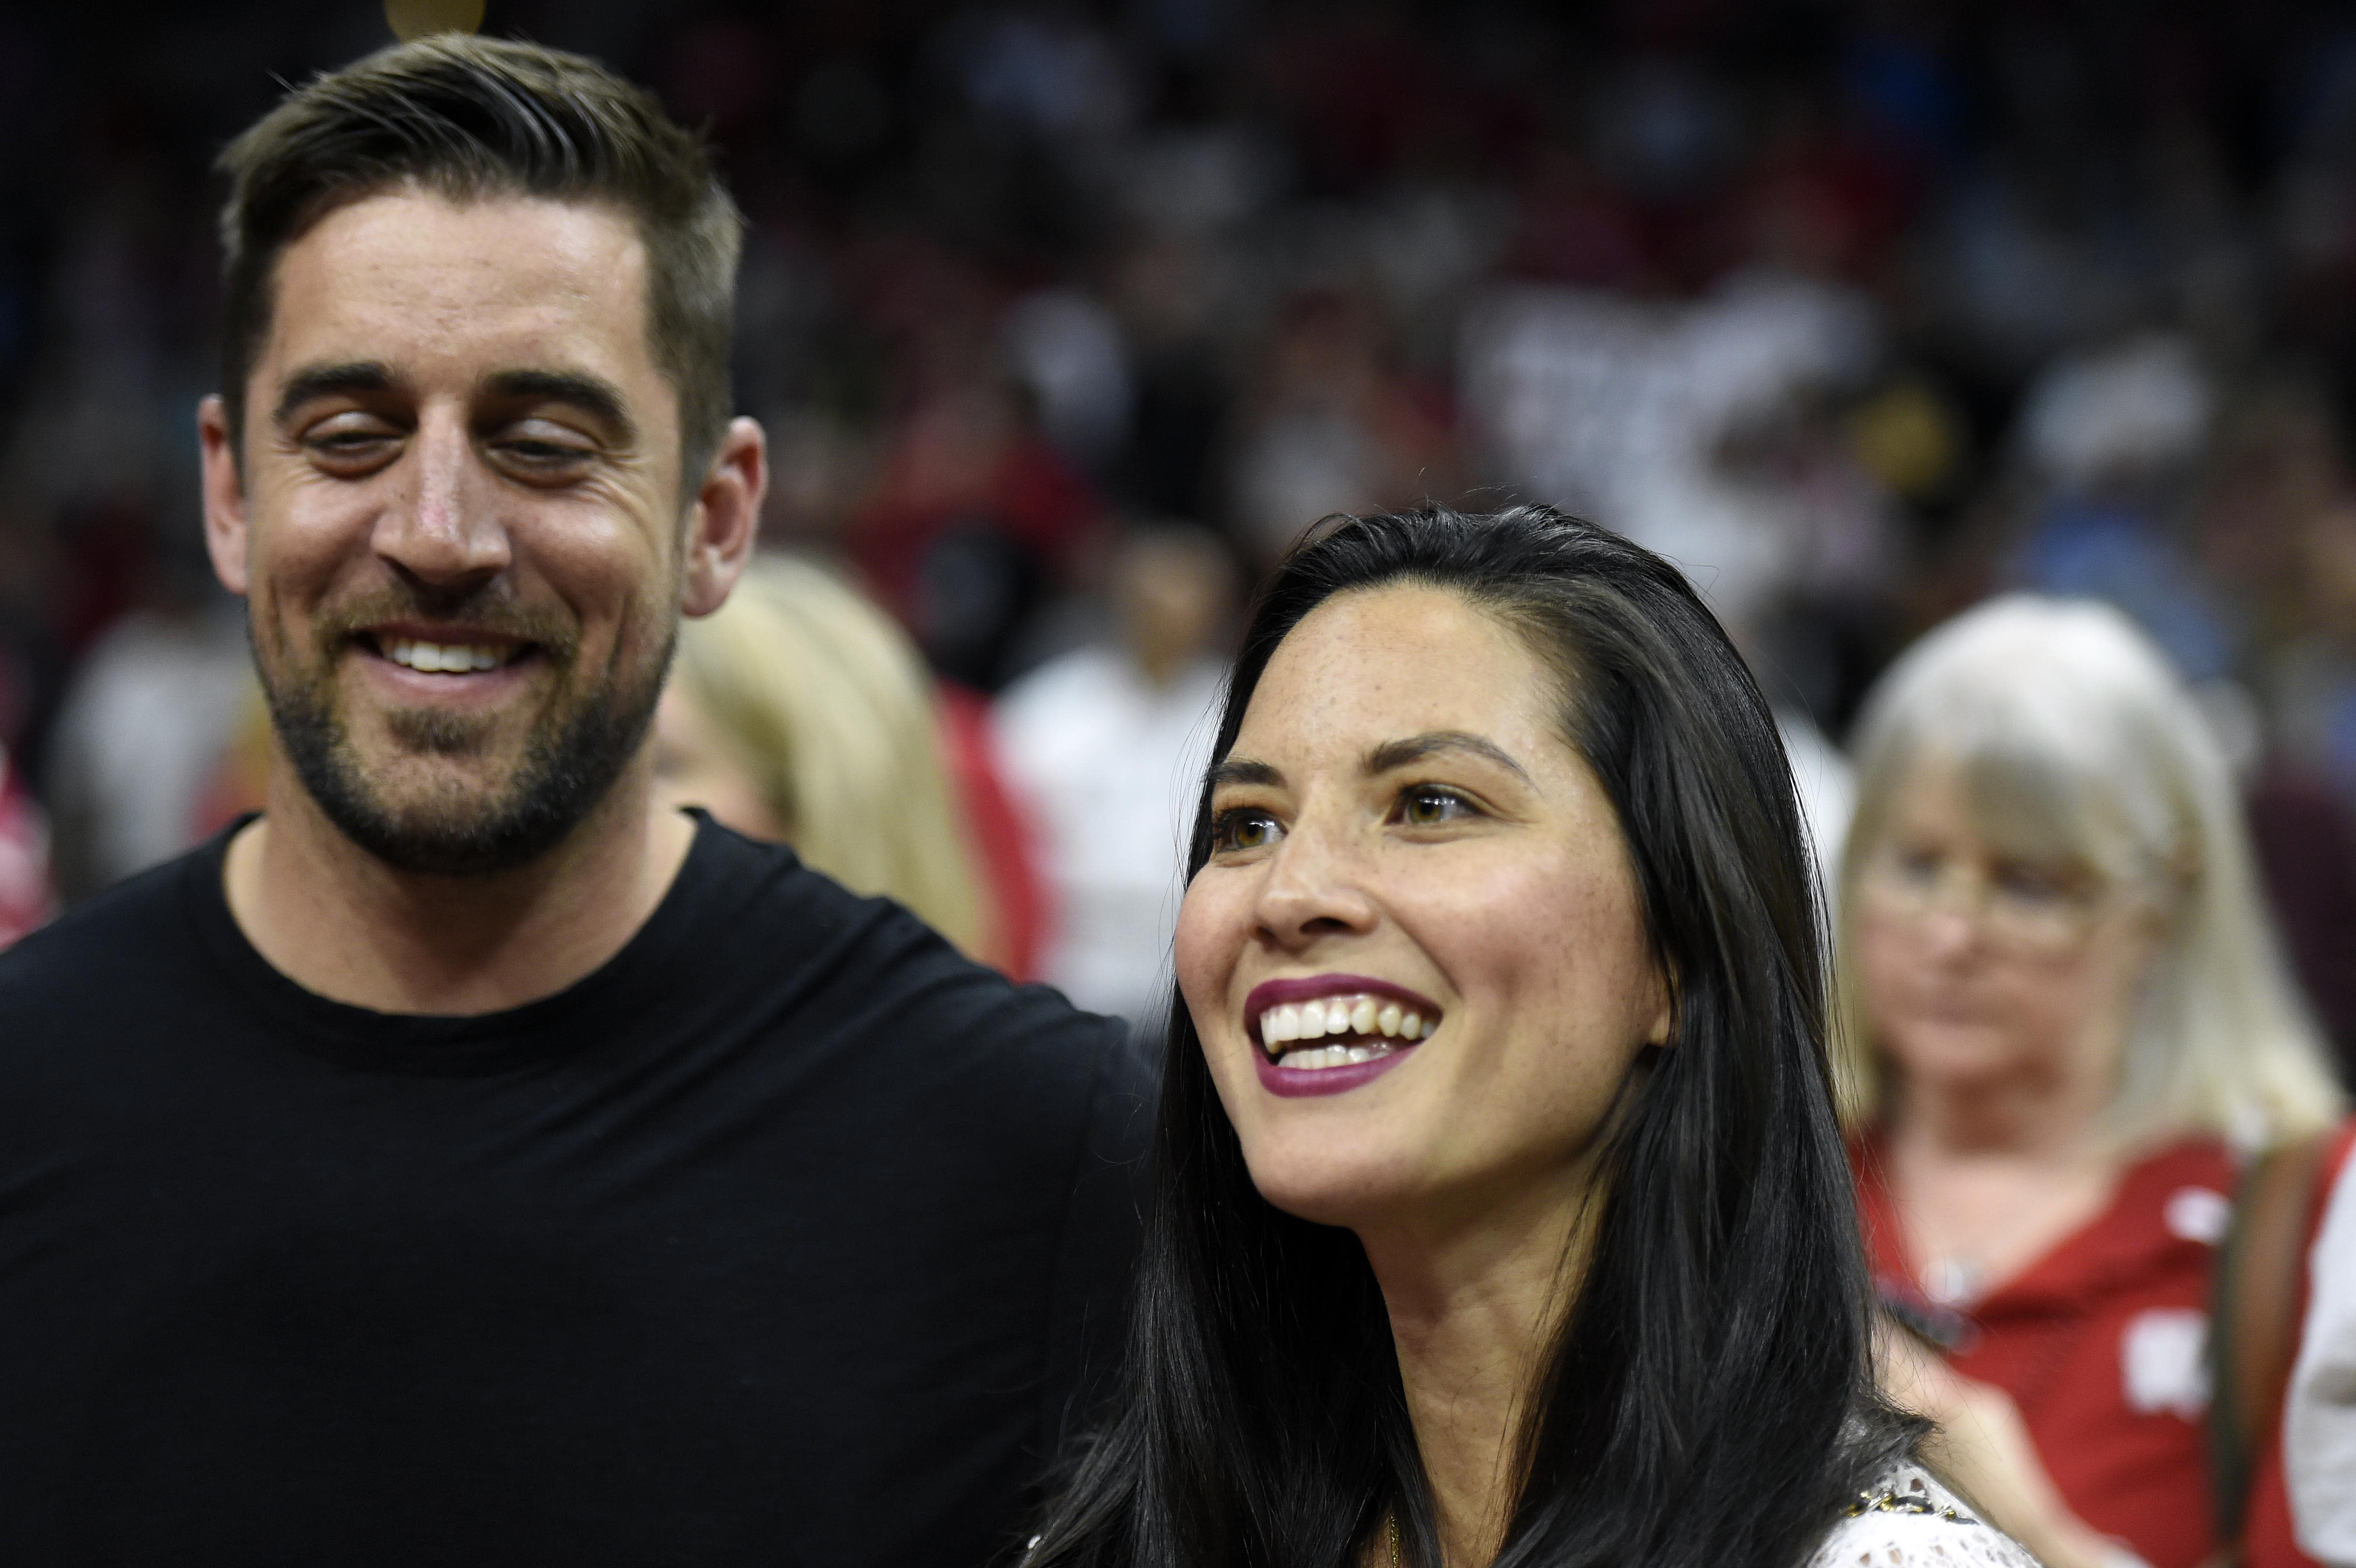 Aaron Rodgers and Olivia Munn - Wisconsin super fans